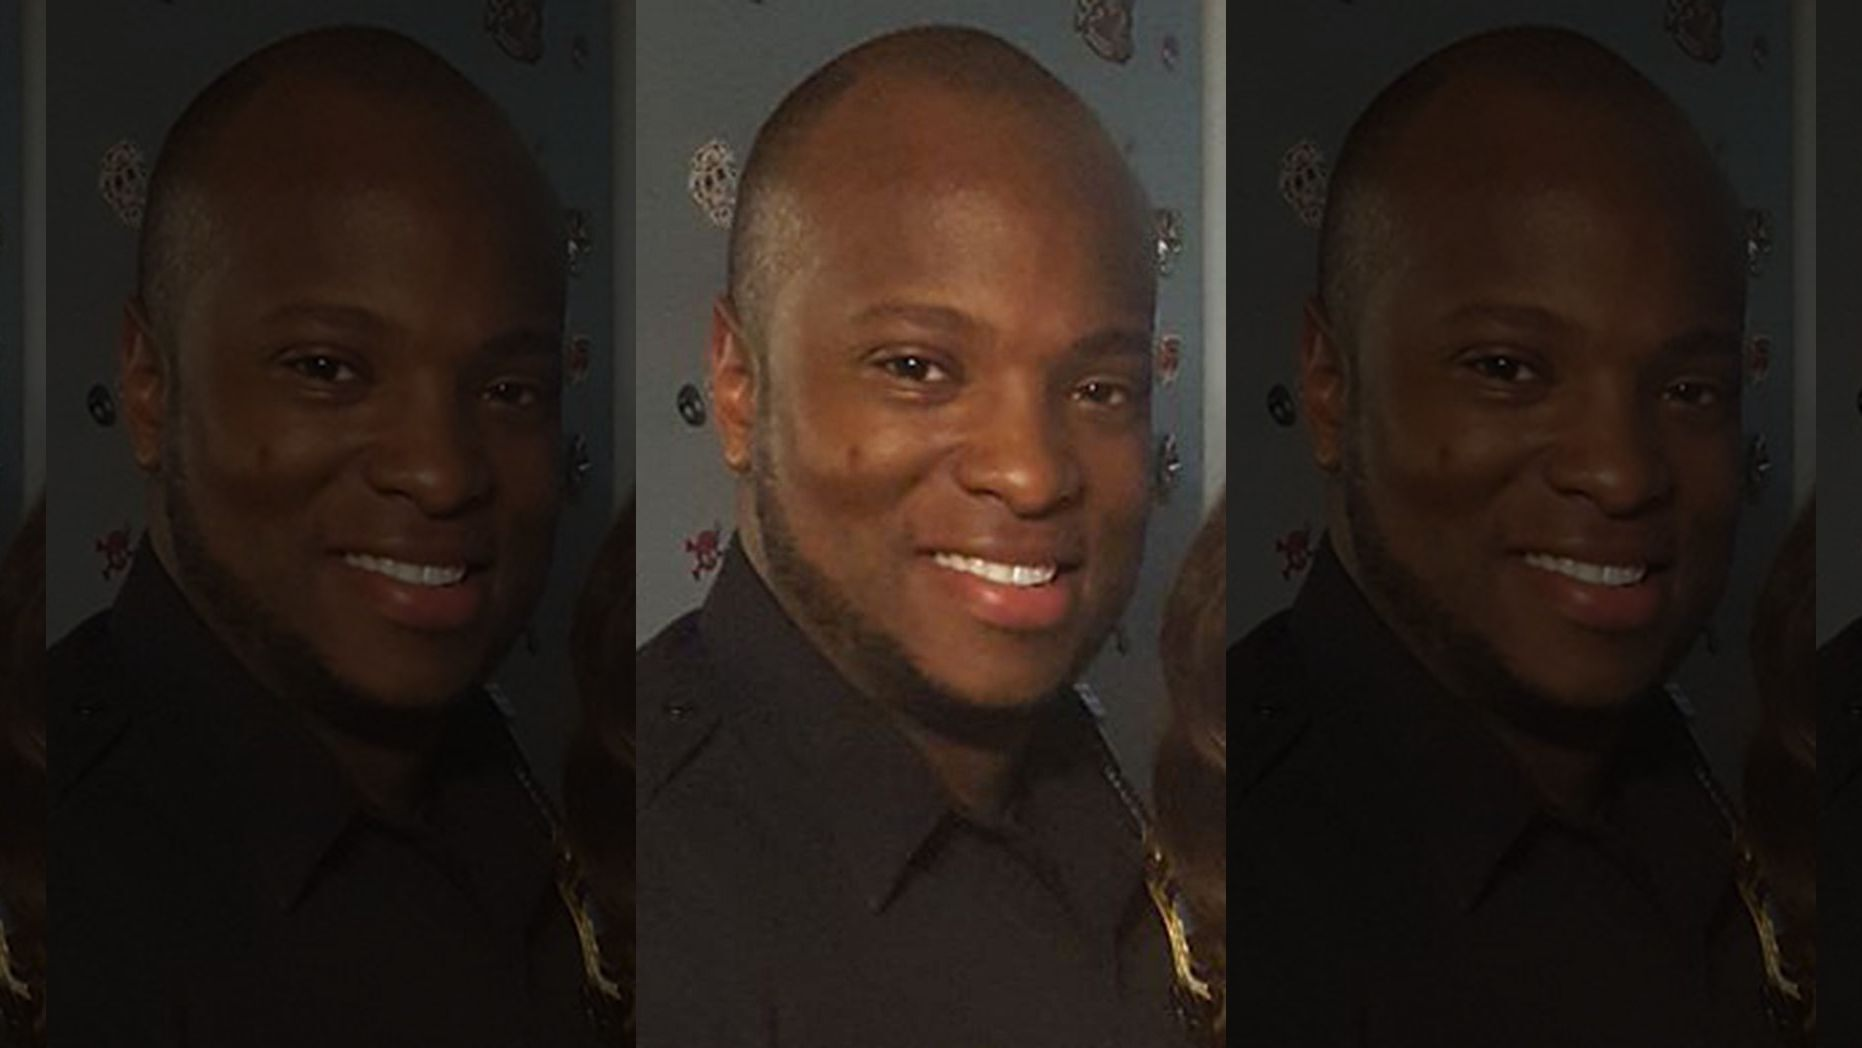 Desmond Logan, 33,A former Tennessee police officer